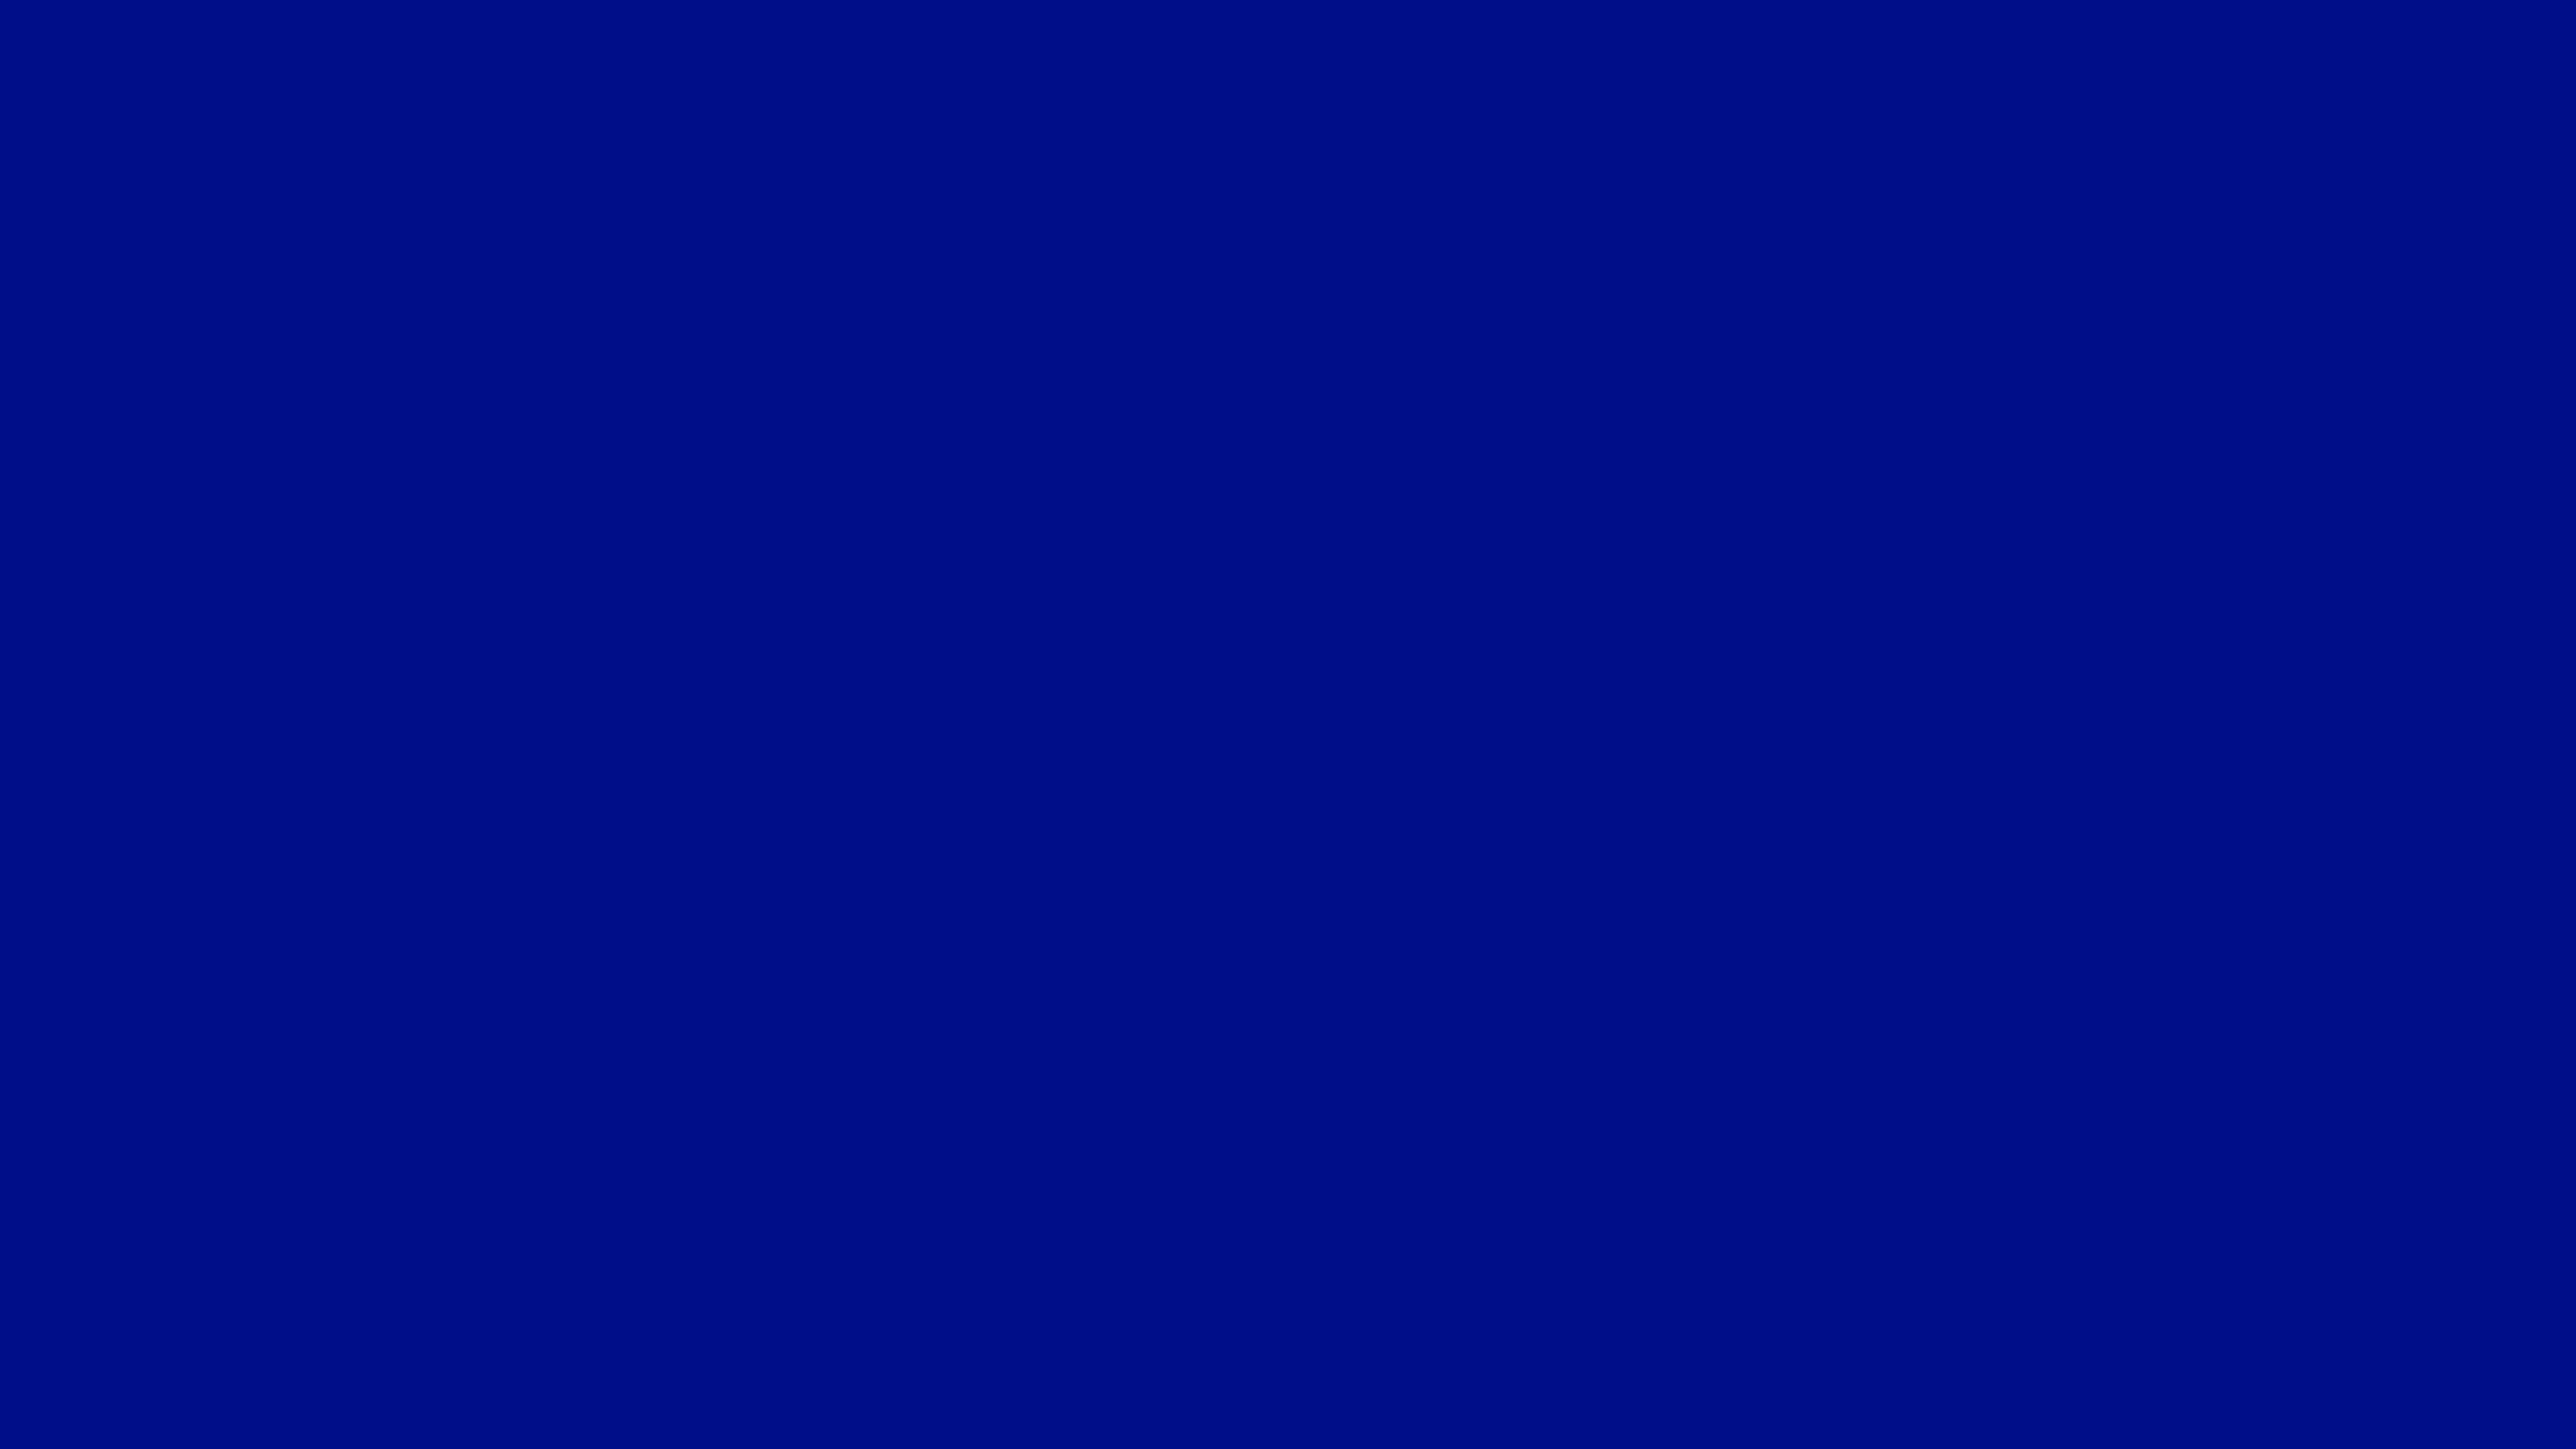 5120x2880 Phthalo Blue Solid Color Background